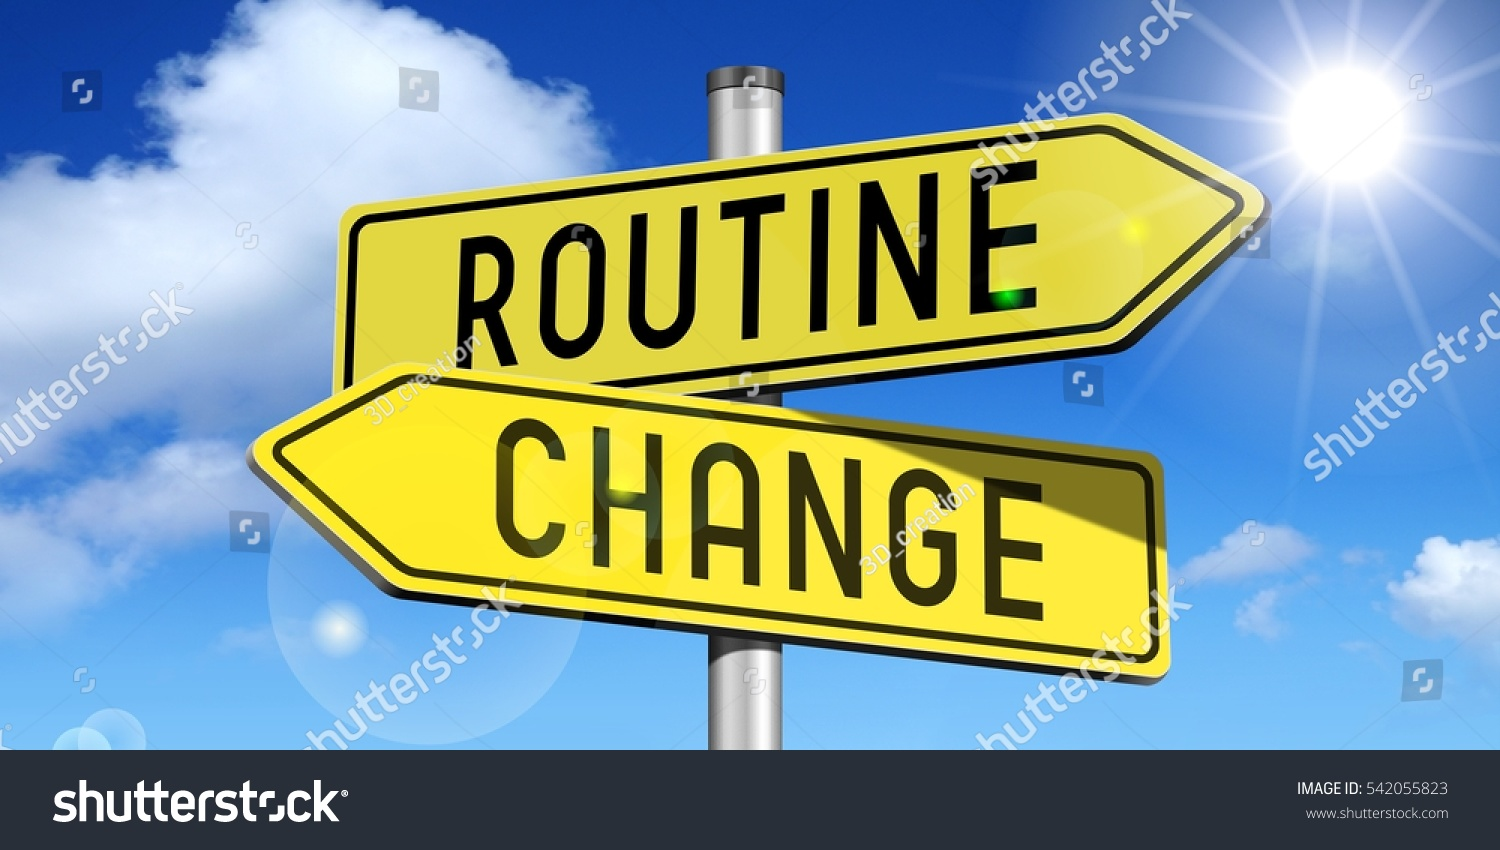 Routine, change - yellow road-sign